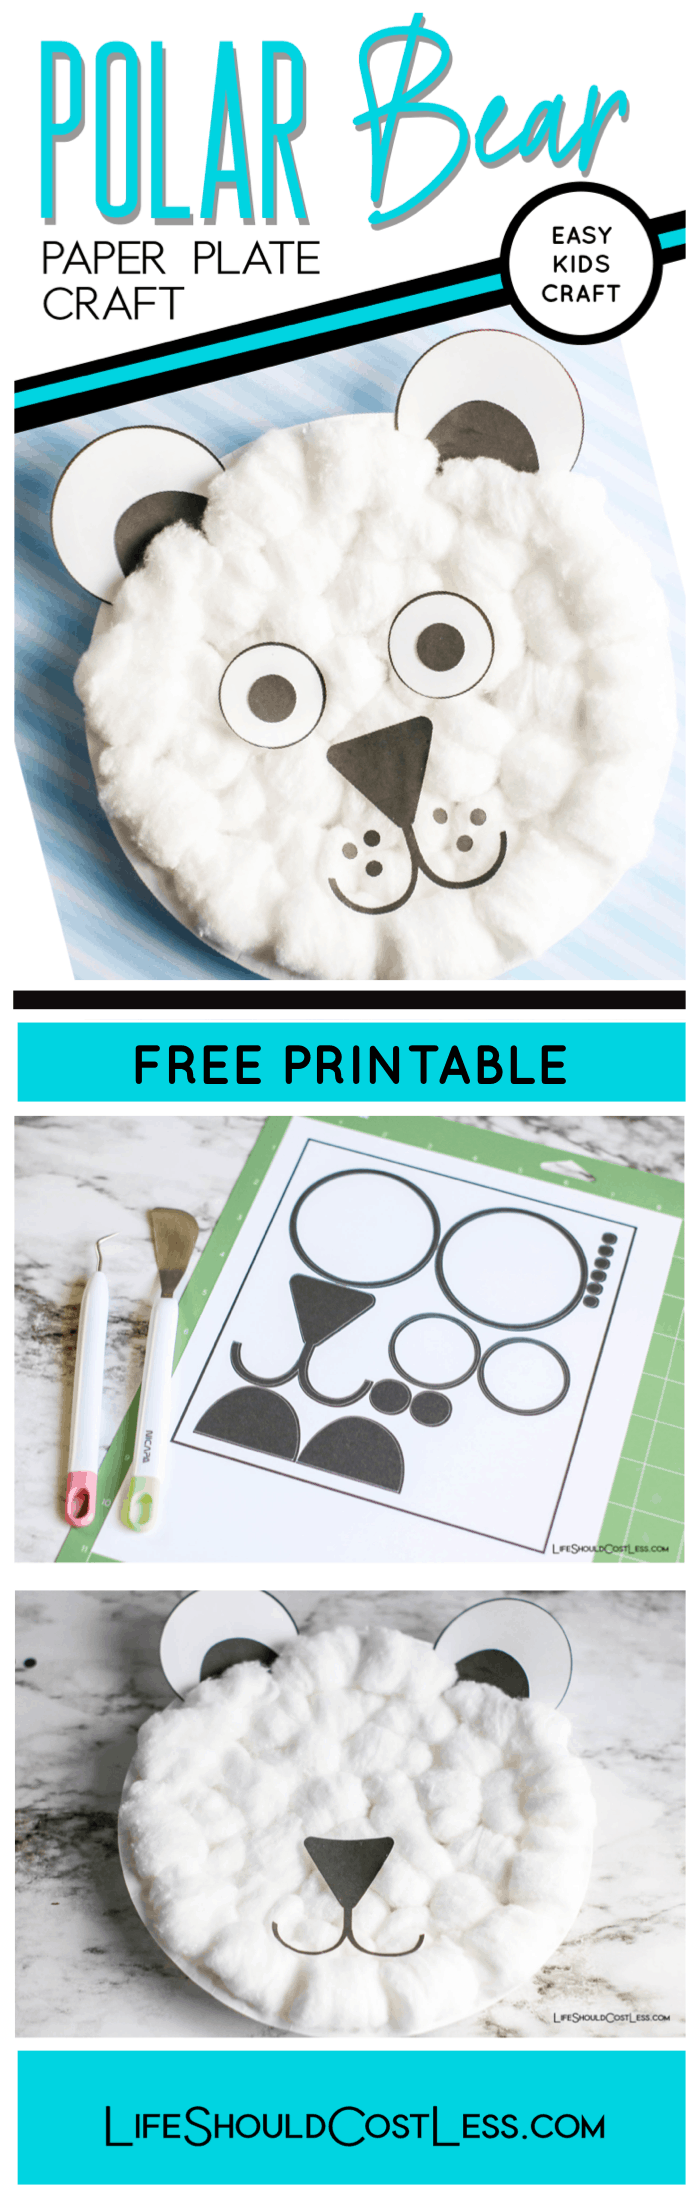 Learn how to make easy polar bear paper plate craft with free printable templates. Perfect for toddler, preschool, and first grade aged kids.